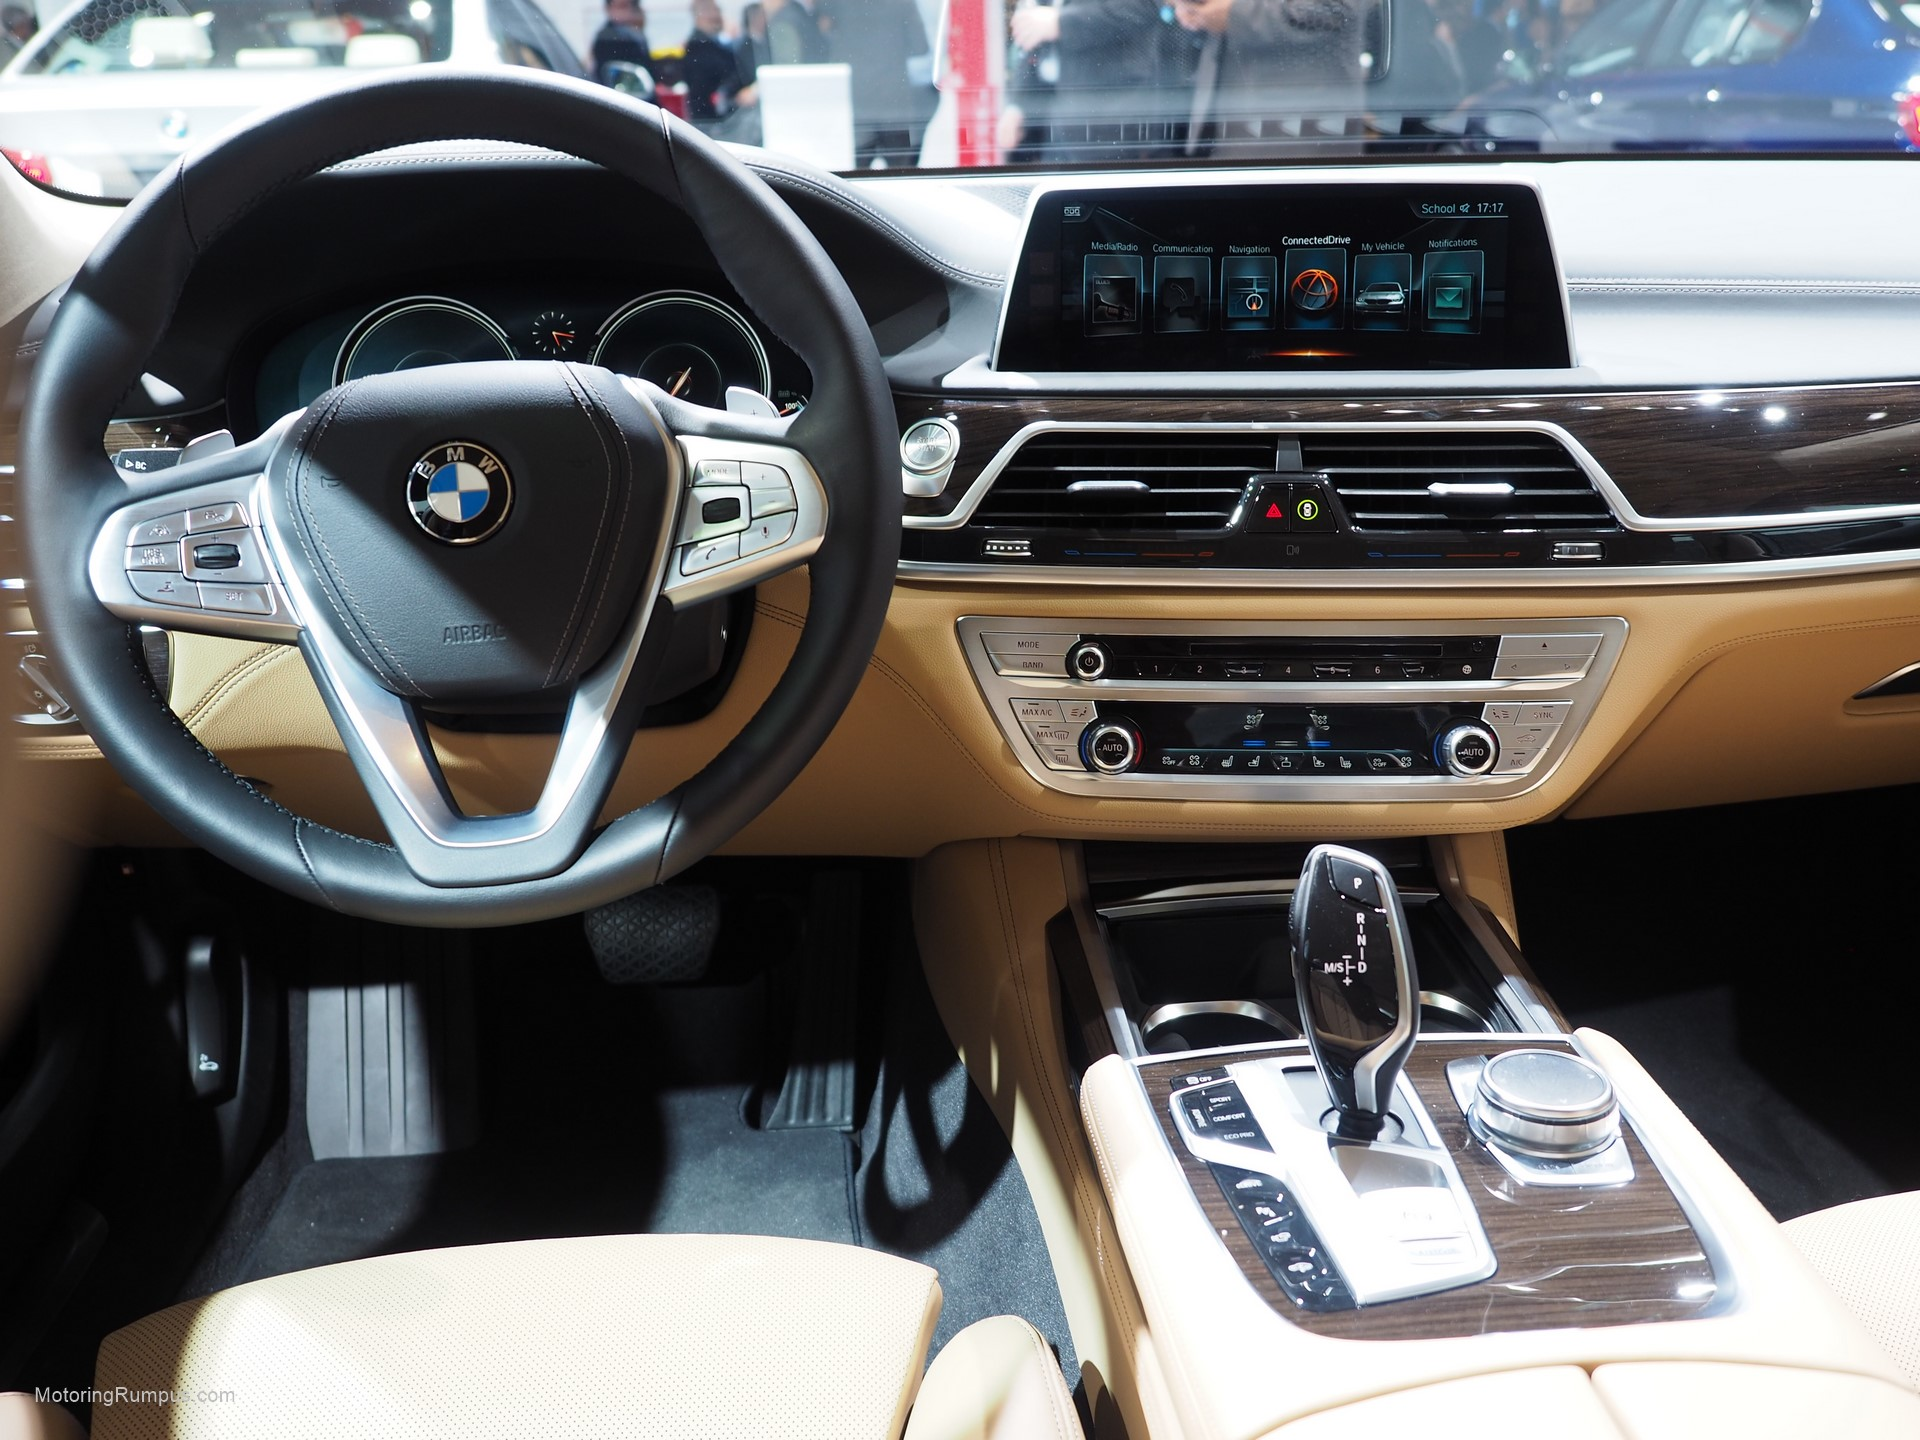 2016 Camaro Interior >> 2016 NAIAS BMW 740e Interior - Motoring Rumpus